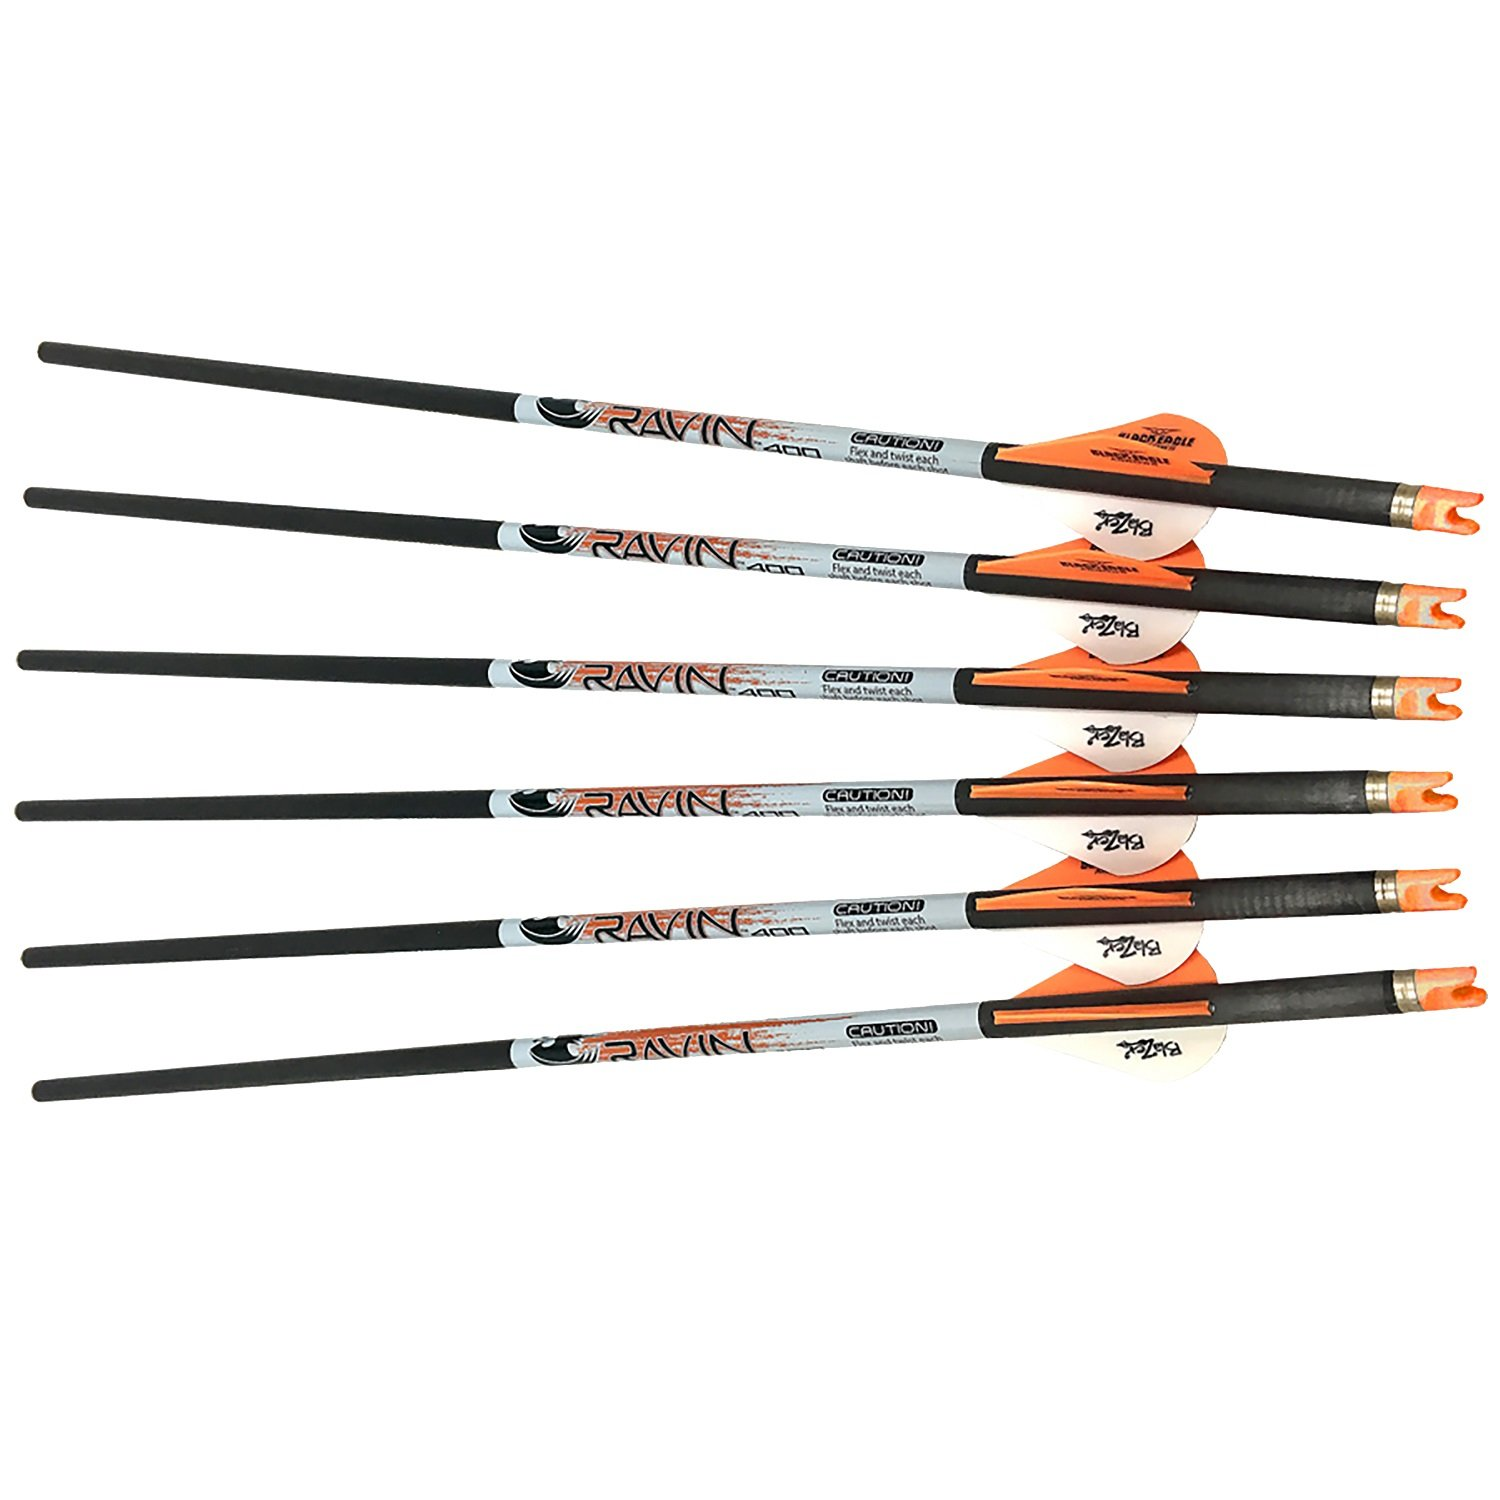 Ravin Crossbows Arrows 400 Grain .001 Premium Lighted-3 Pack R134